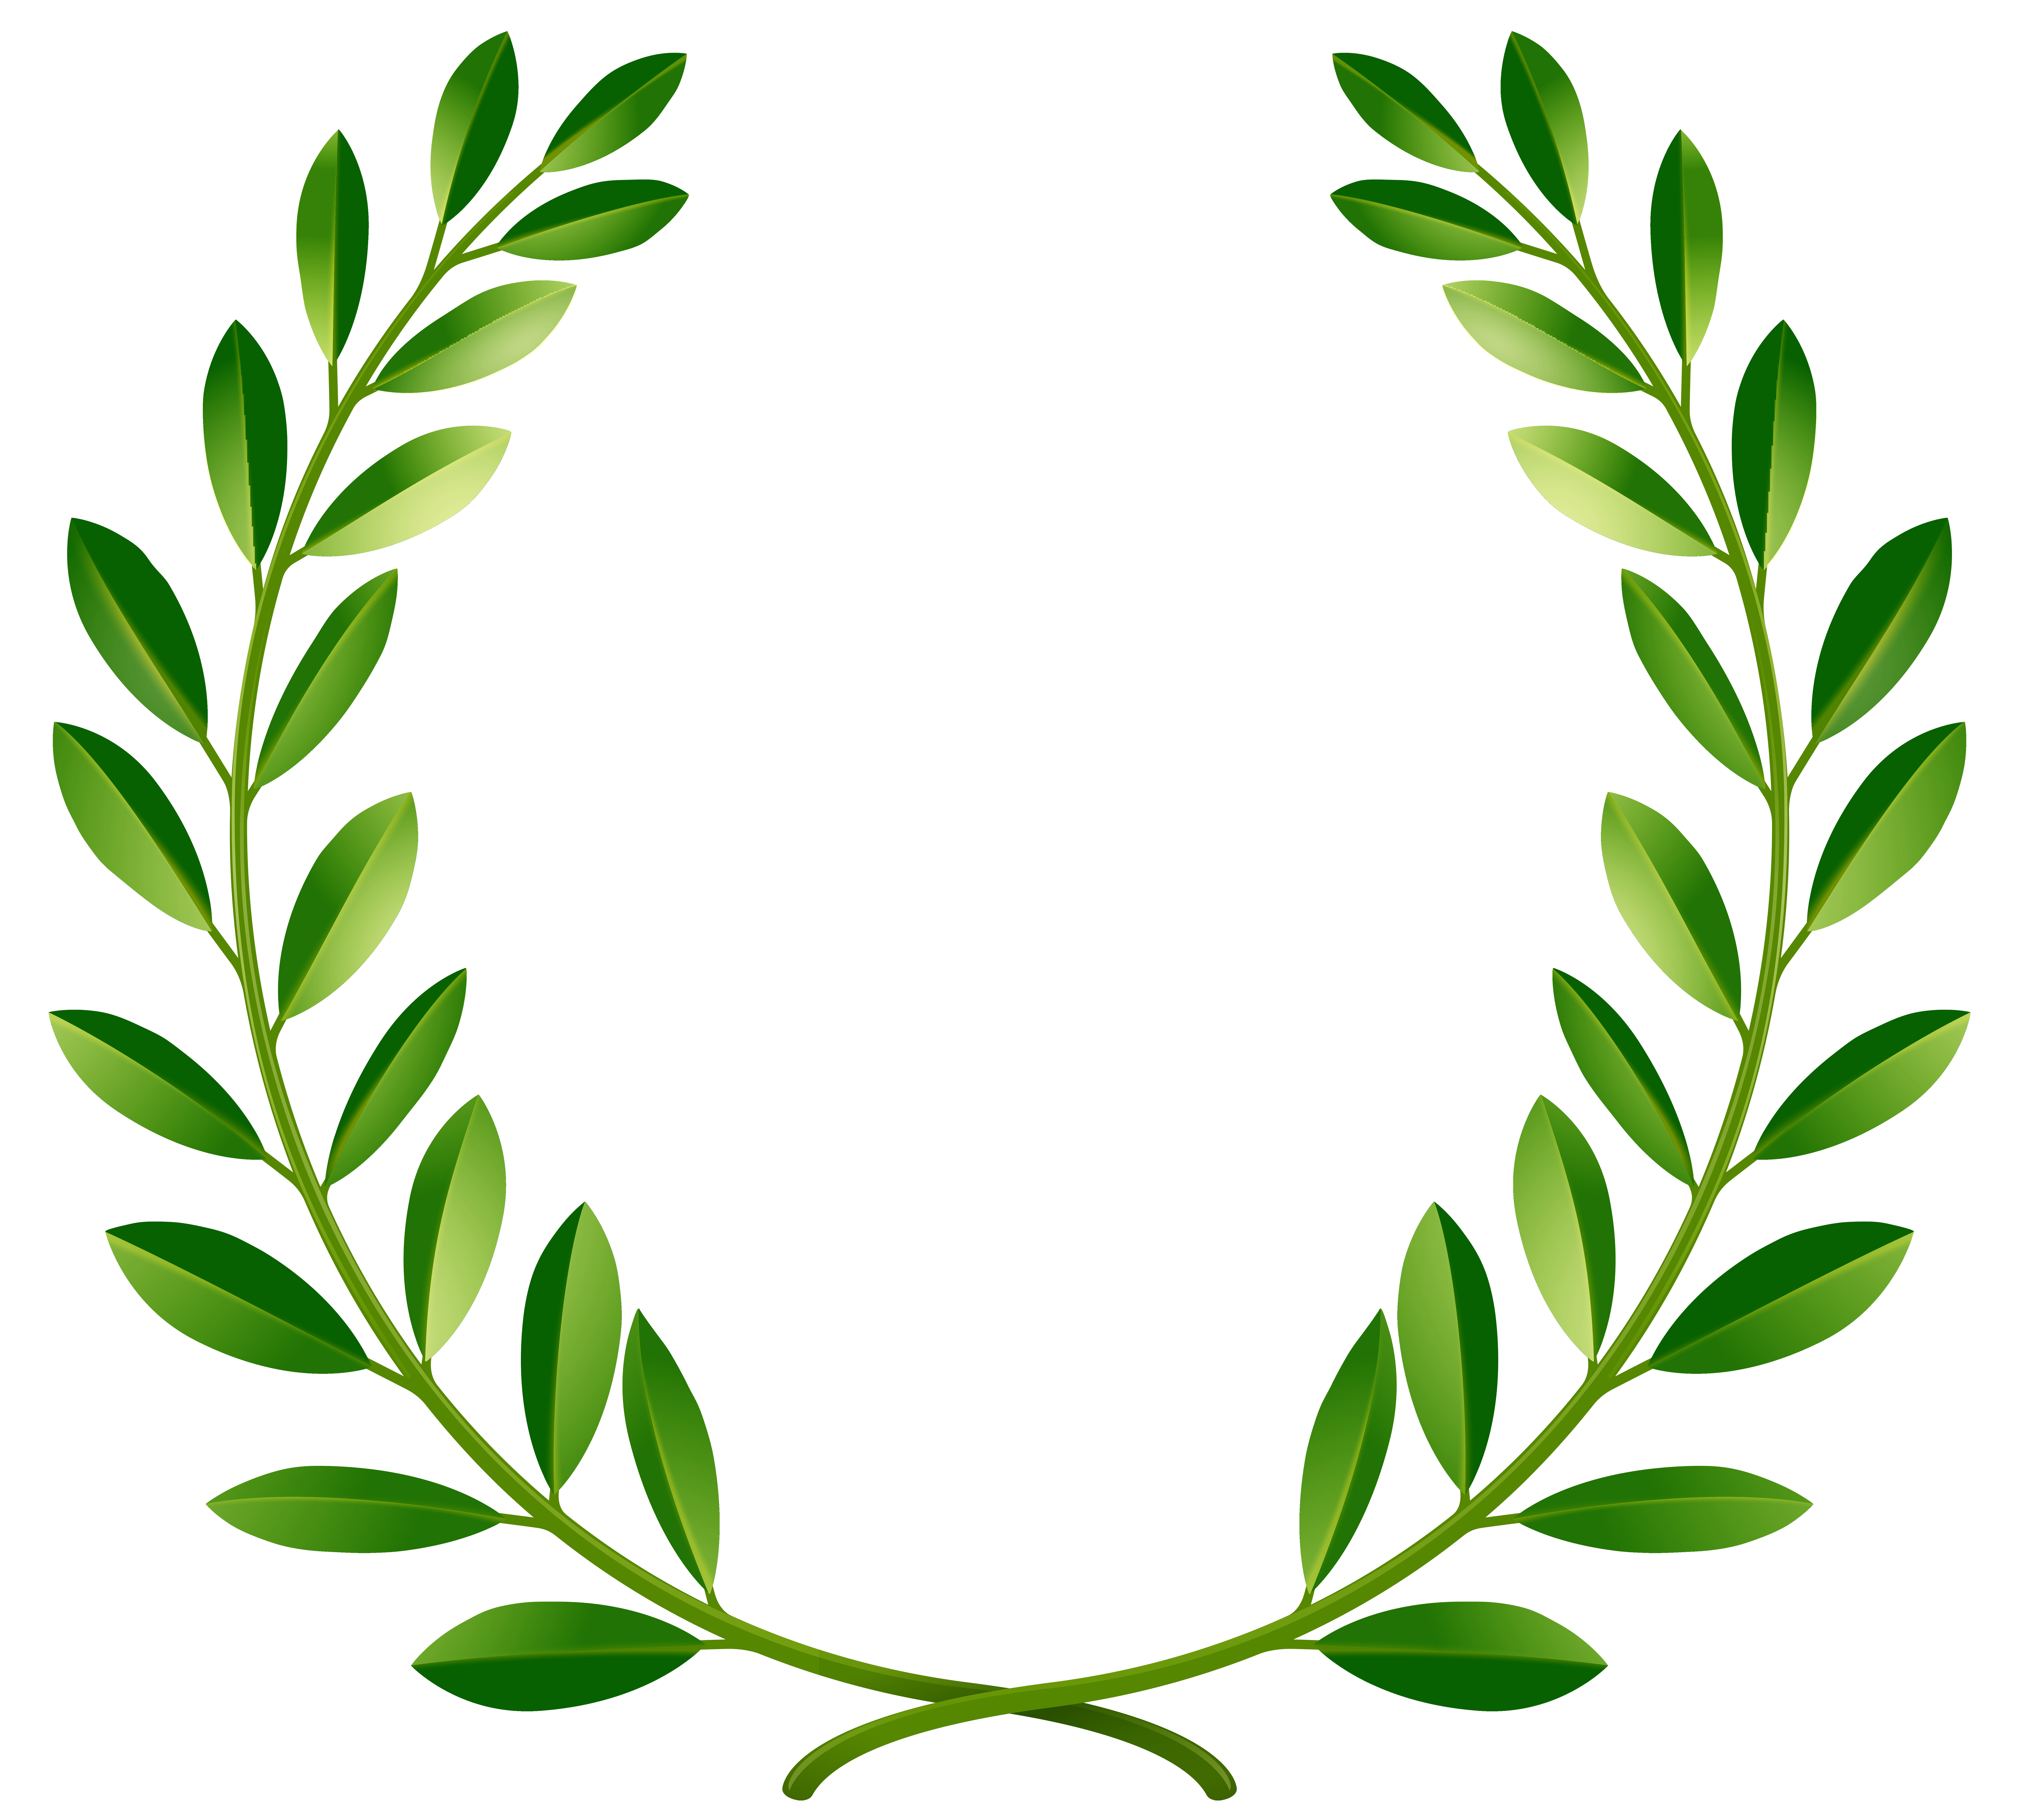 Green Laurel Leaves PNG Clip Art Image.